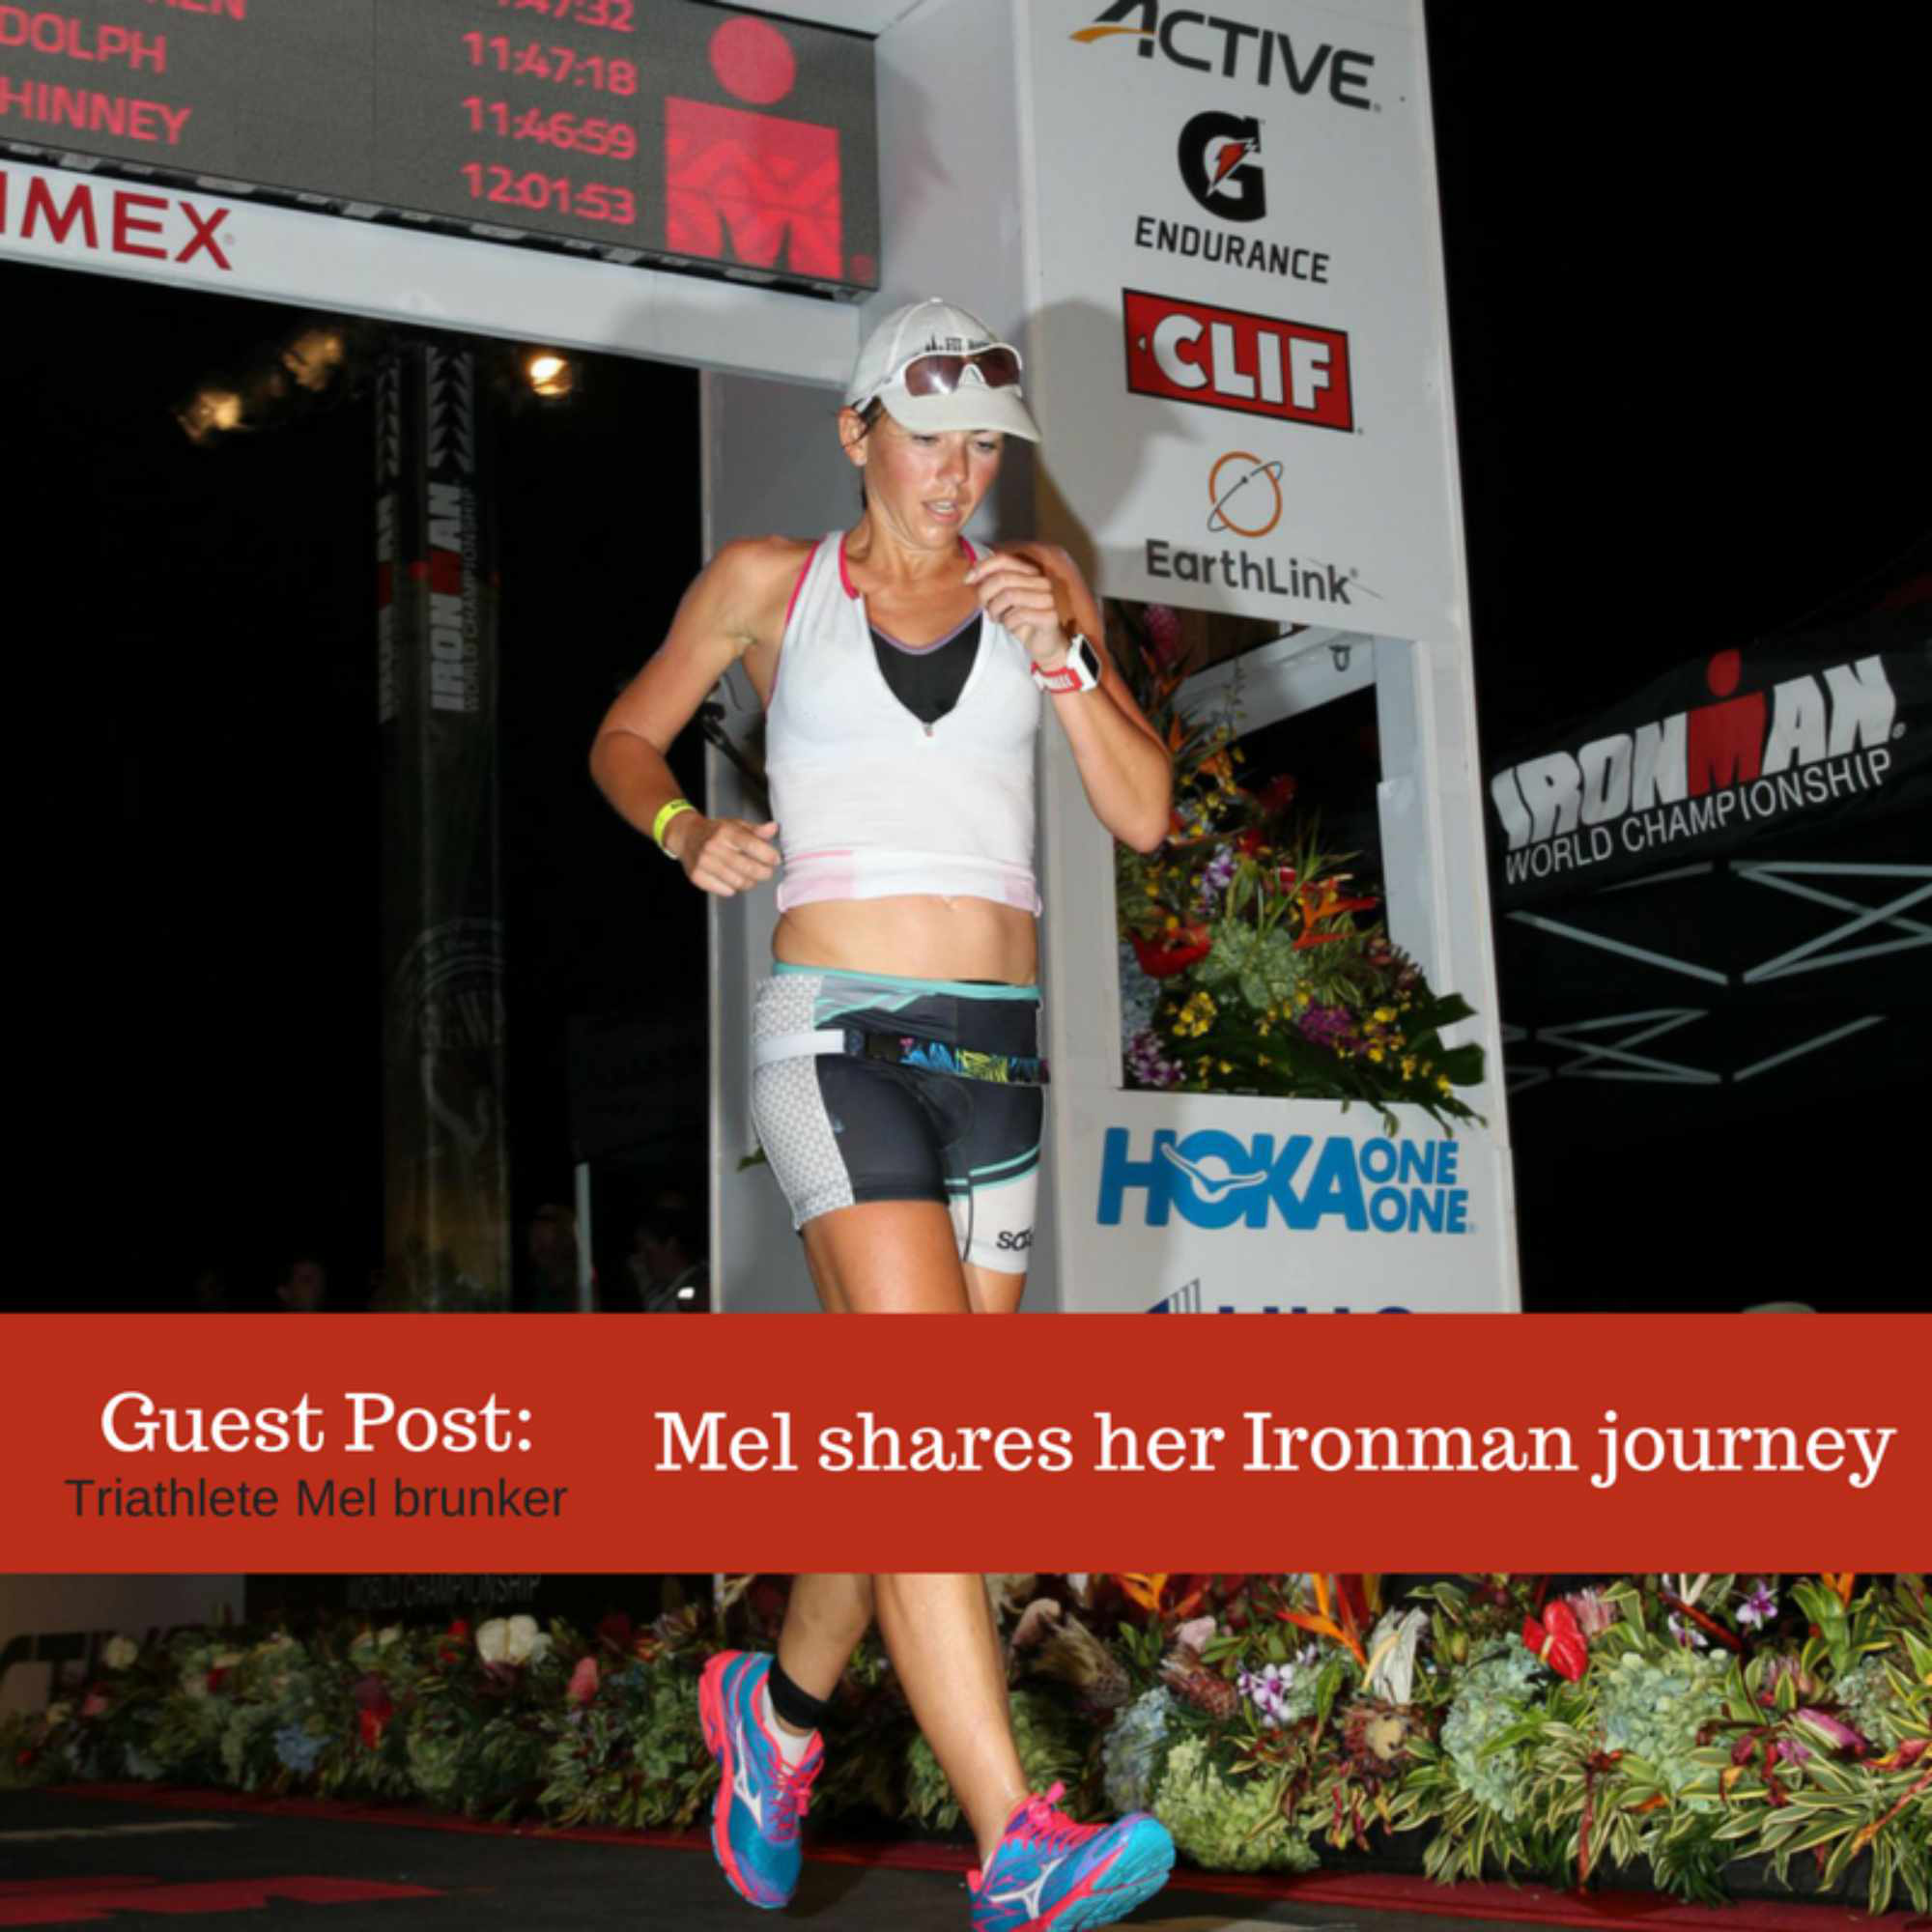 Guest Post: Mel Brunker shares her Ironman World Championship Journey